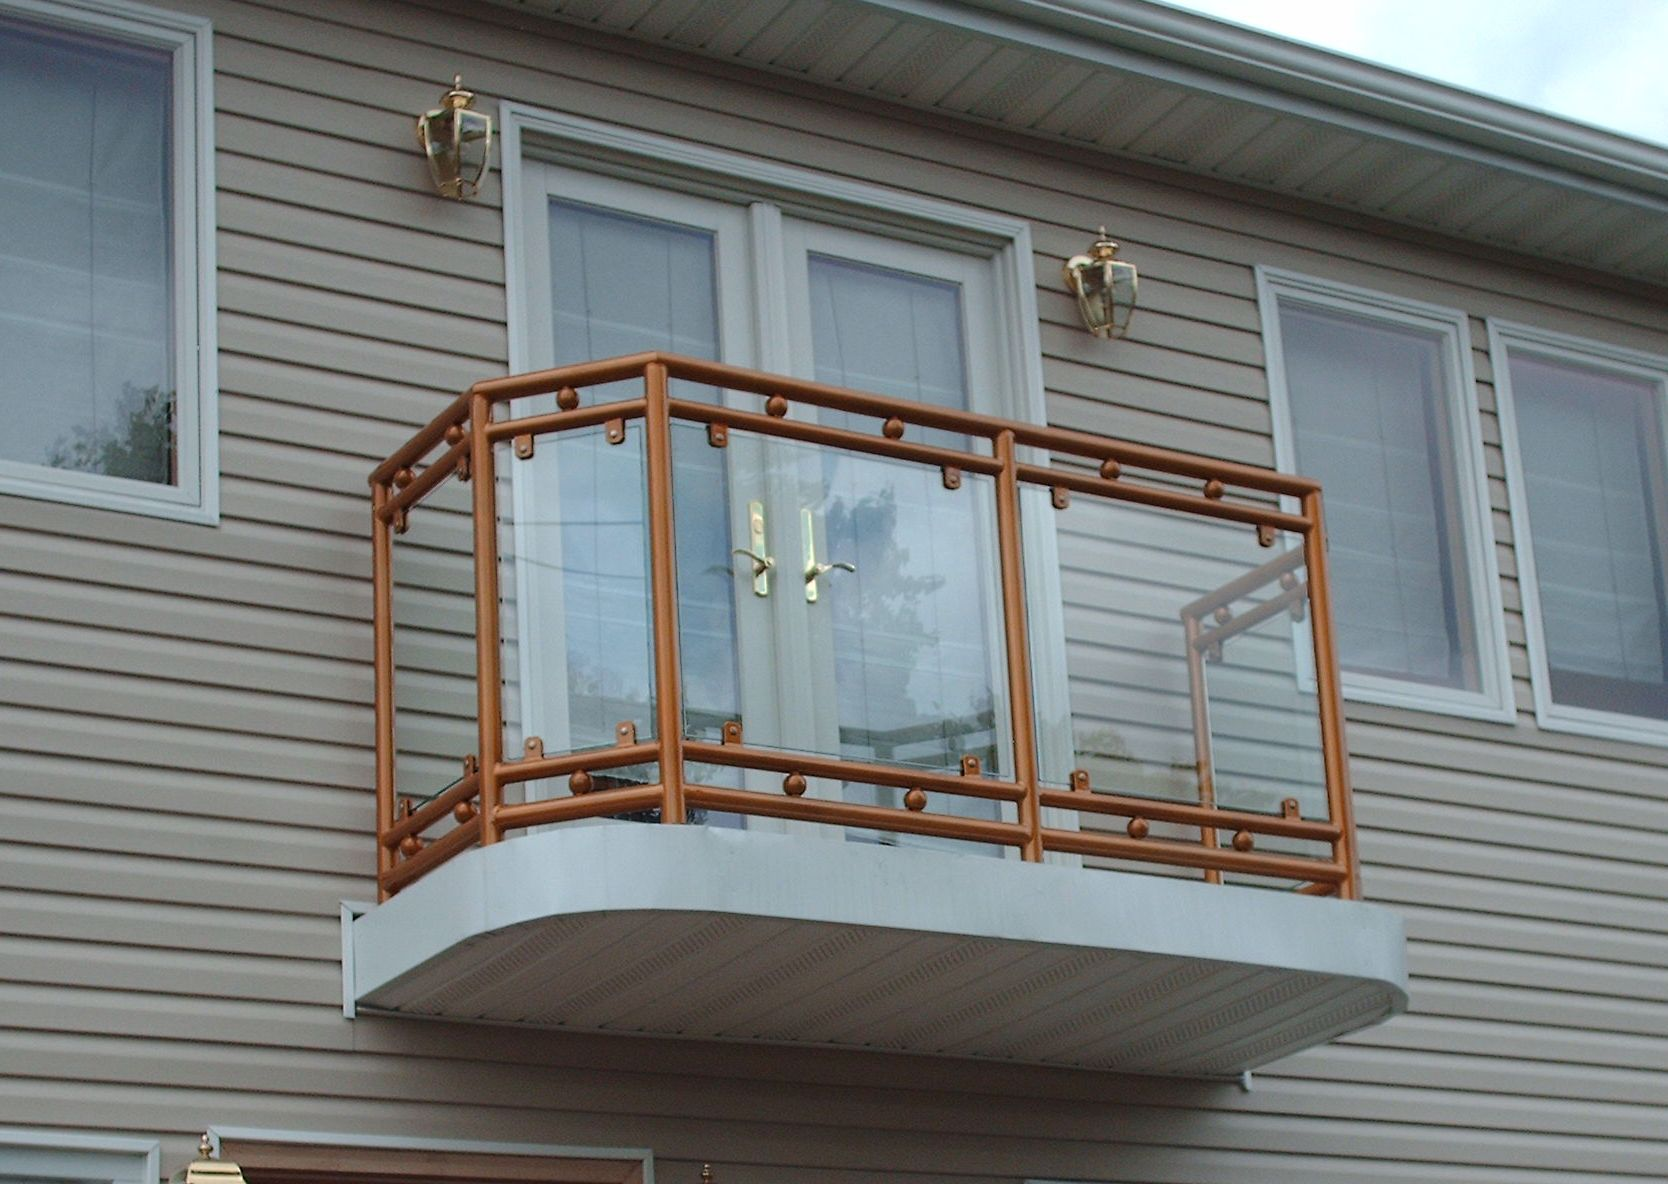 Guardian gate balcony balconies pinterest balcony for Balcony models